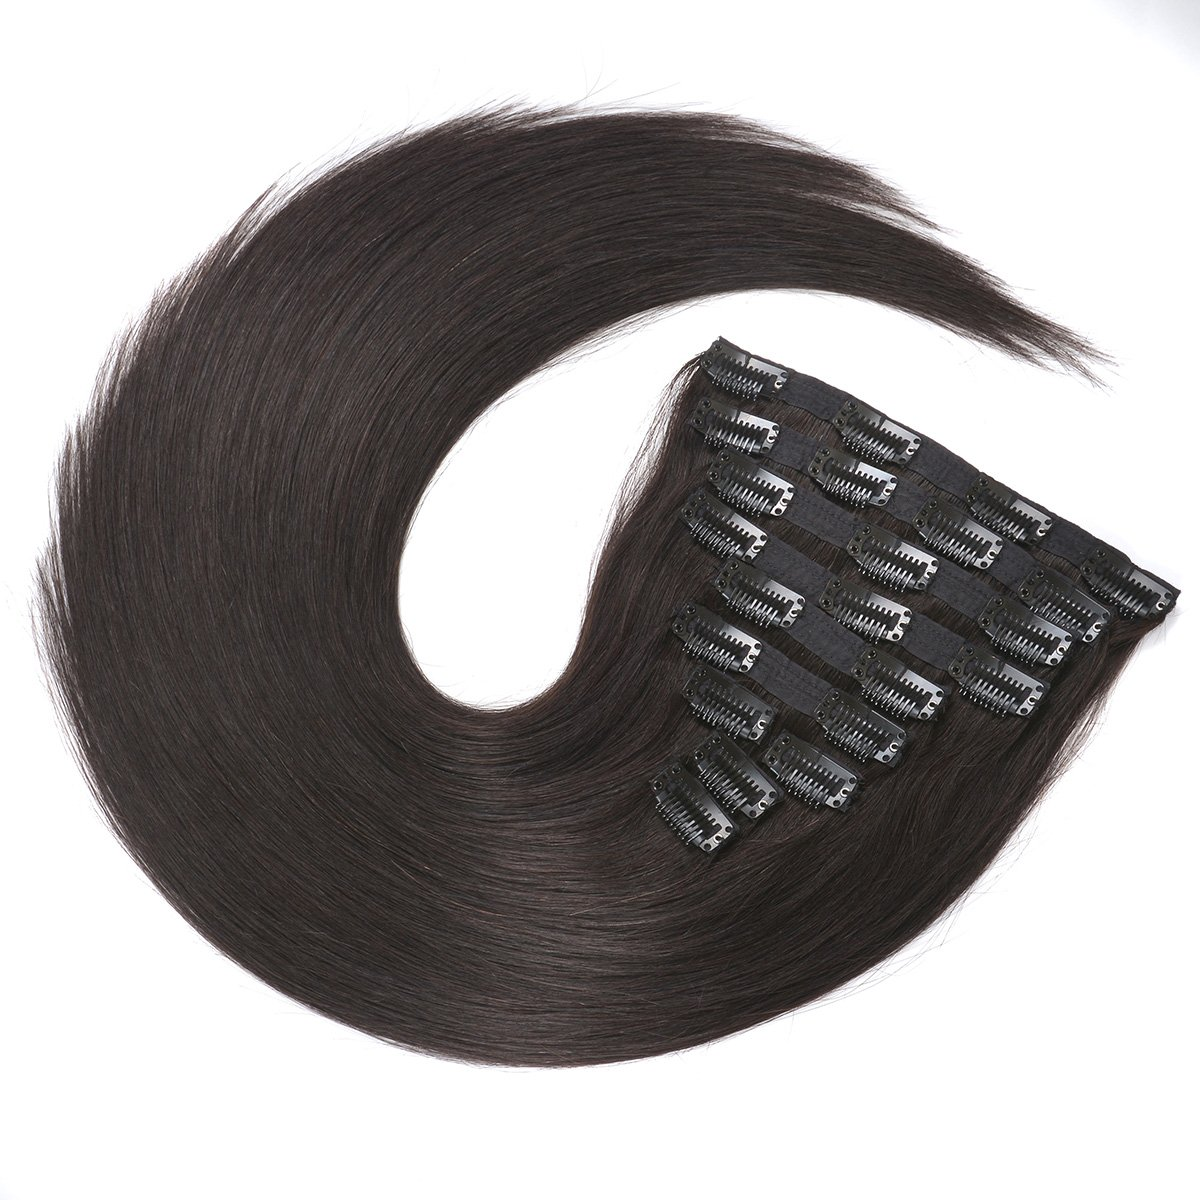 20'' Clip in Human Hair Extensions Natural Hair Clip in Extensions for Thick Hair Full Head Off Black #1B 10pieces 220grams/7.7oz by BEAUTY PLUS (Image #4)